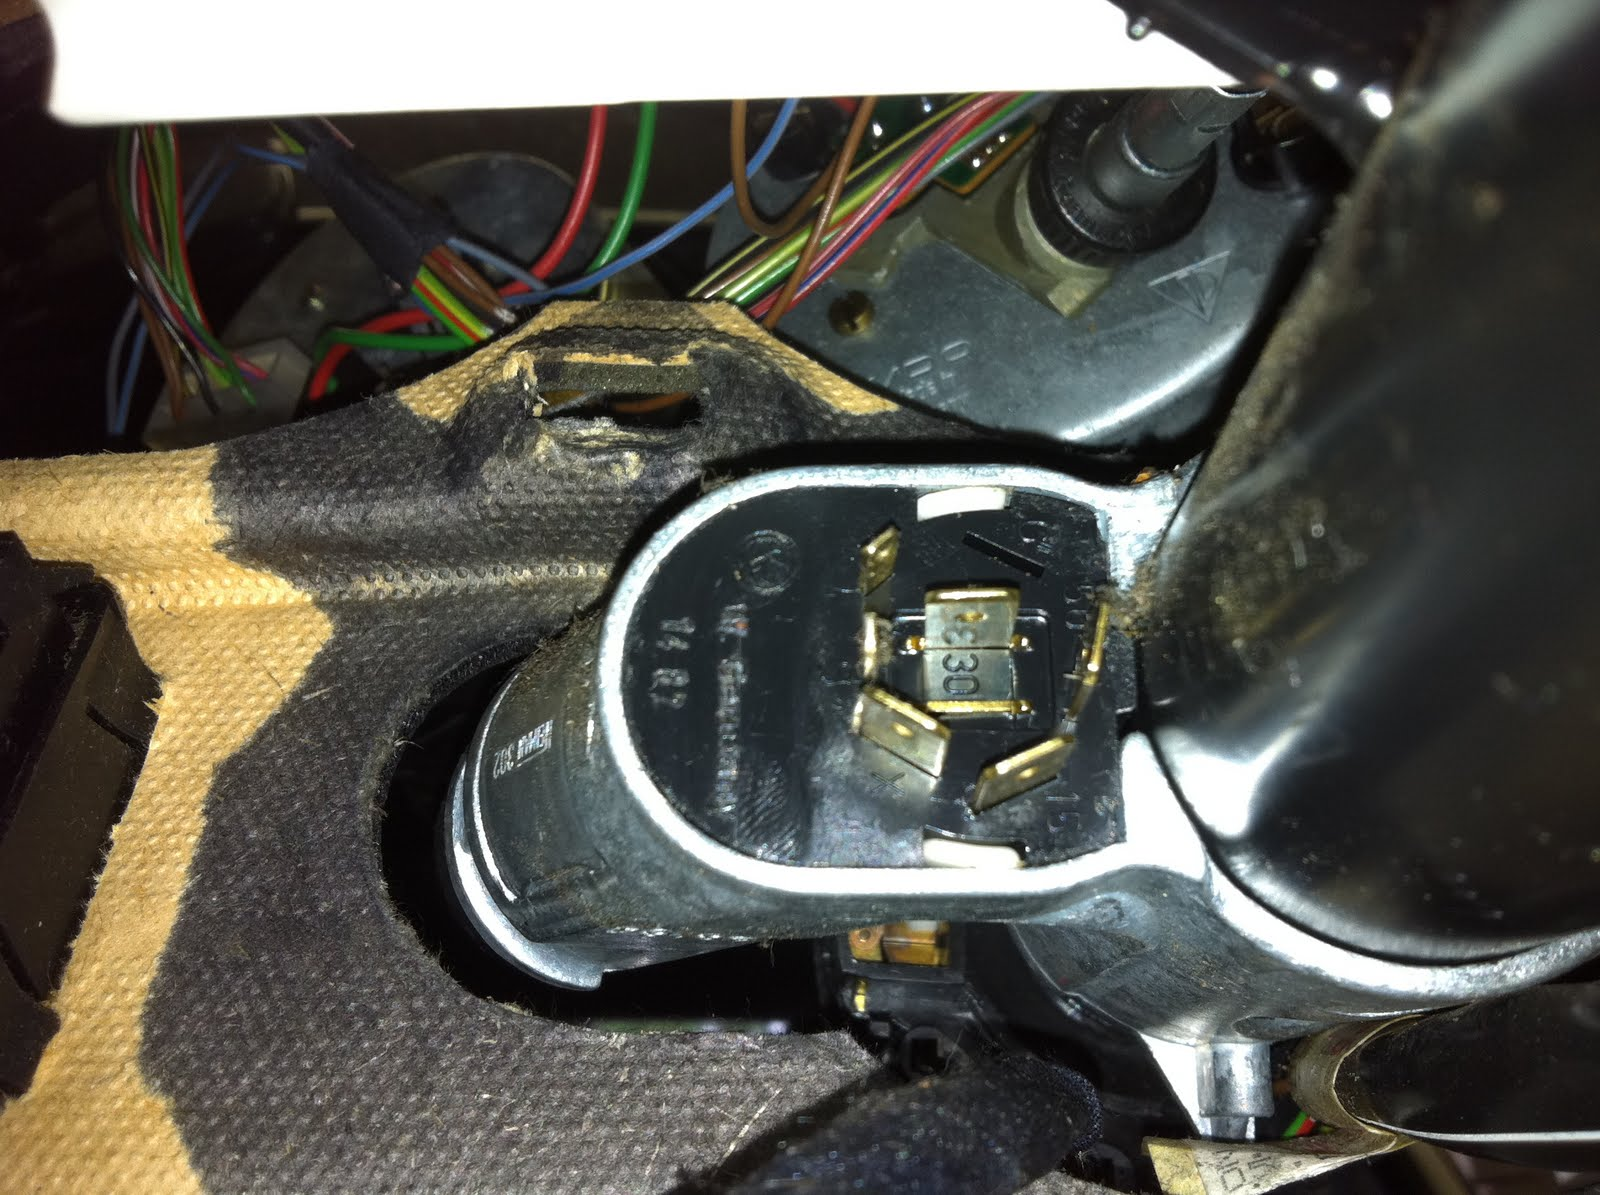 Evaluate The Switch You Need Ignition Is A Standard Volkswagen Part No 111 905 865 L Your Local Vw Dealer Still Have It